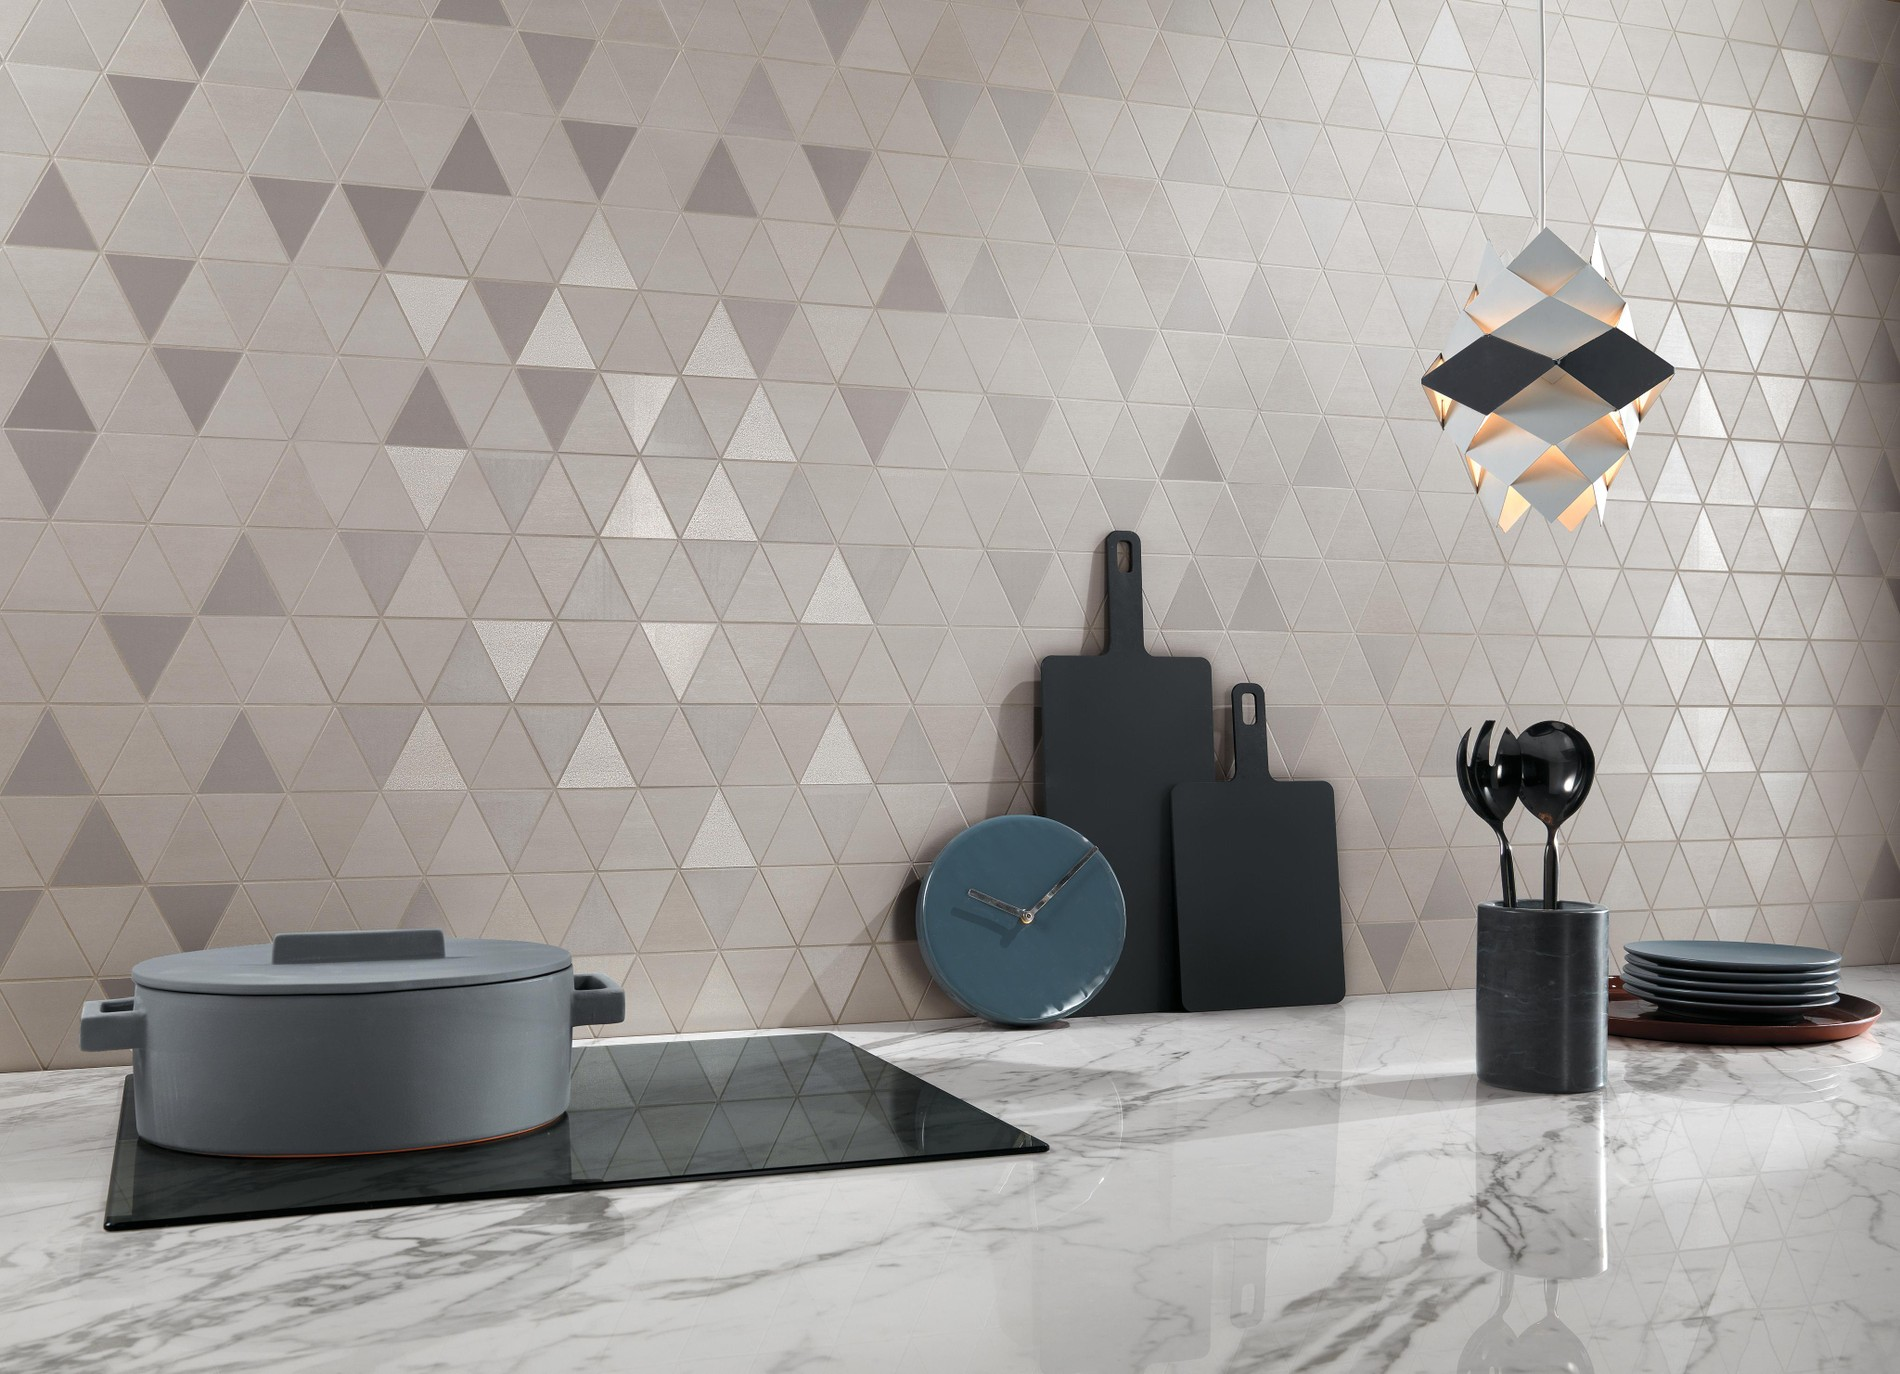 Metal-look porcelain floor and wall tiles